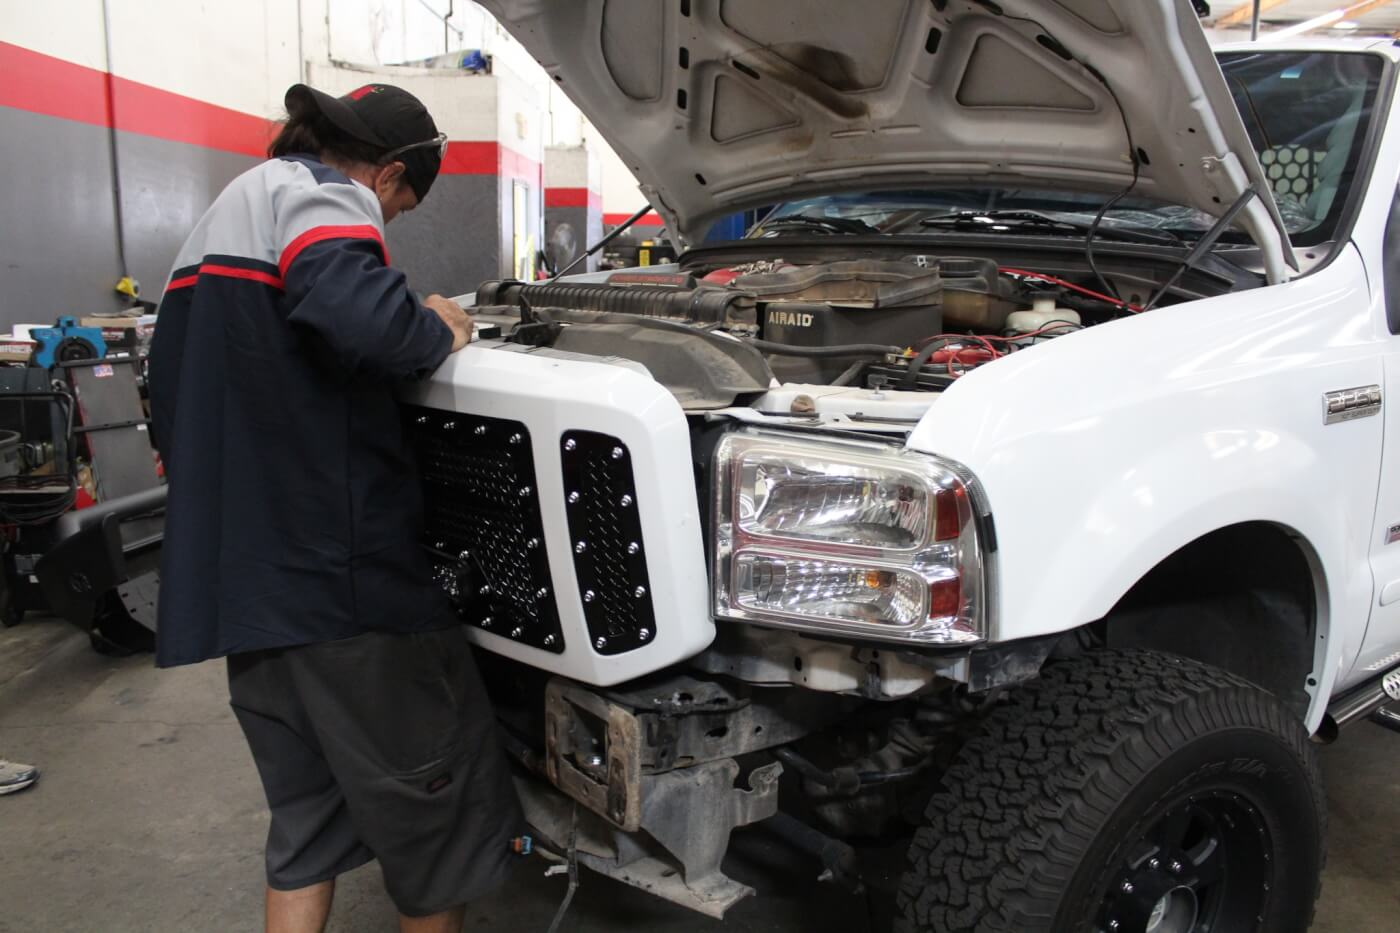 16. Once assembly is complete, reinstalling the grille assembly is a simple matter. The grille can be installed with the factory bumper in place, but removing it will make the job much easier. If you have an aftermarket bumper, removal will most likely be mandatory.